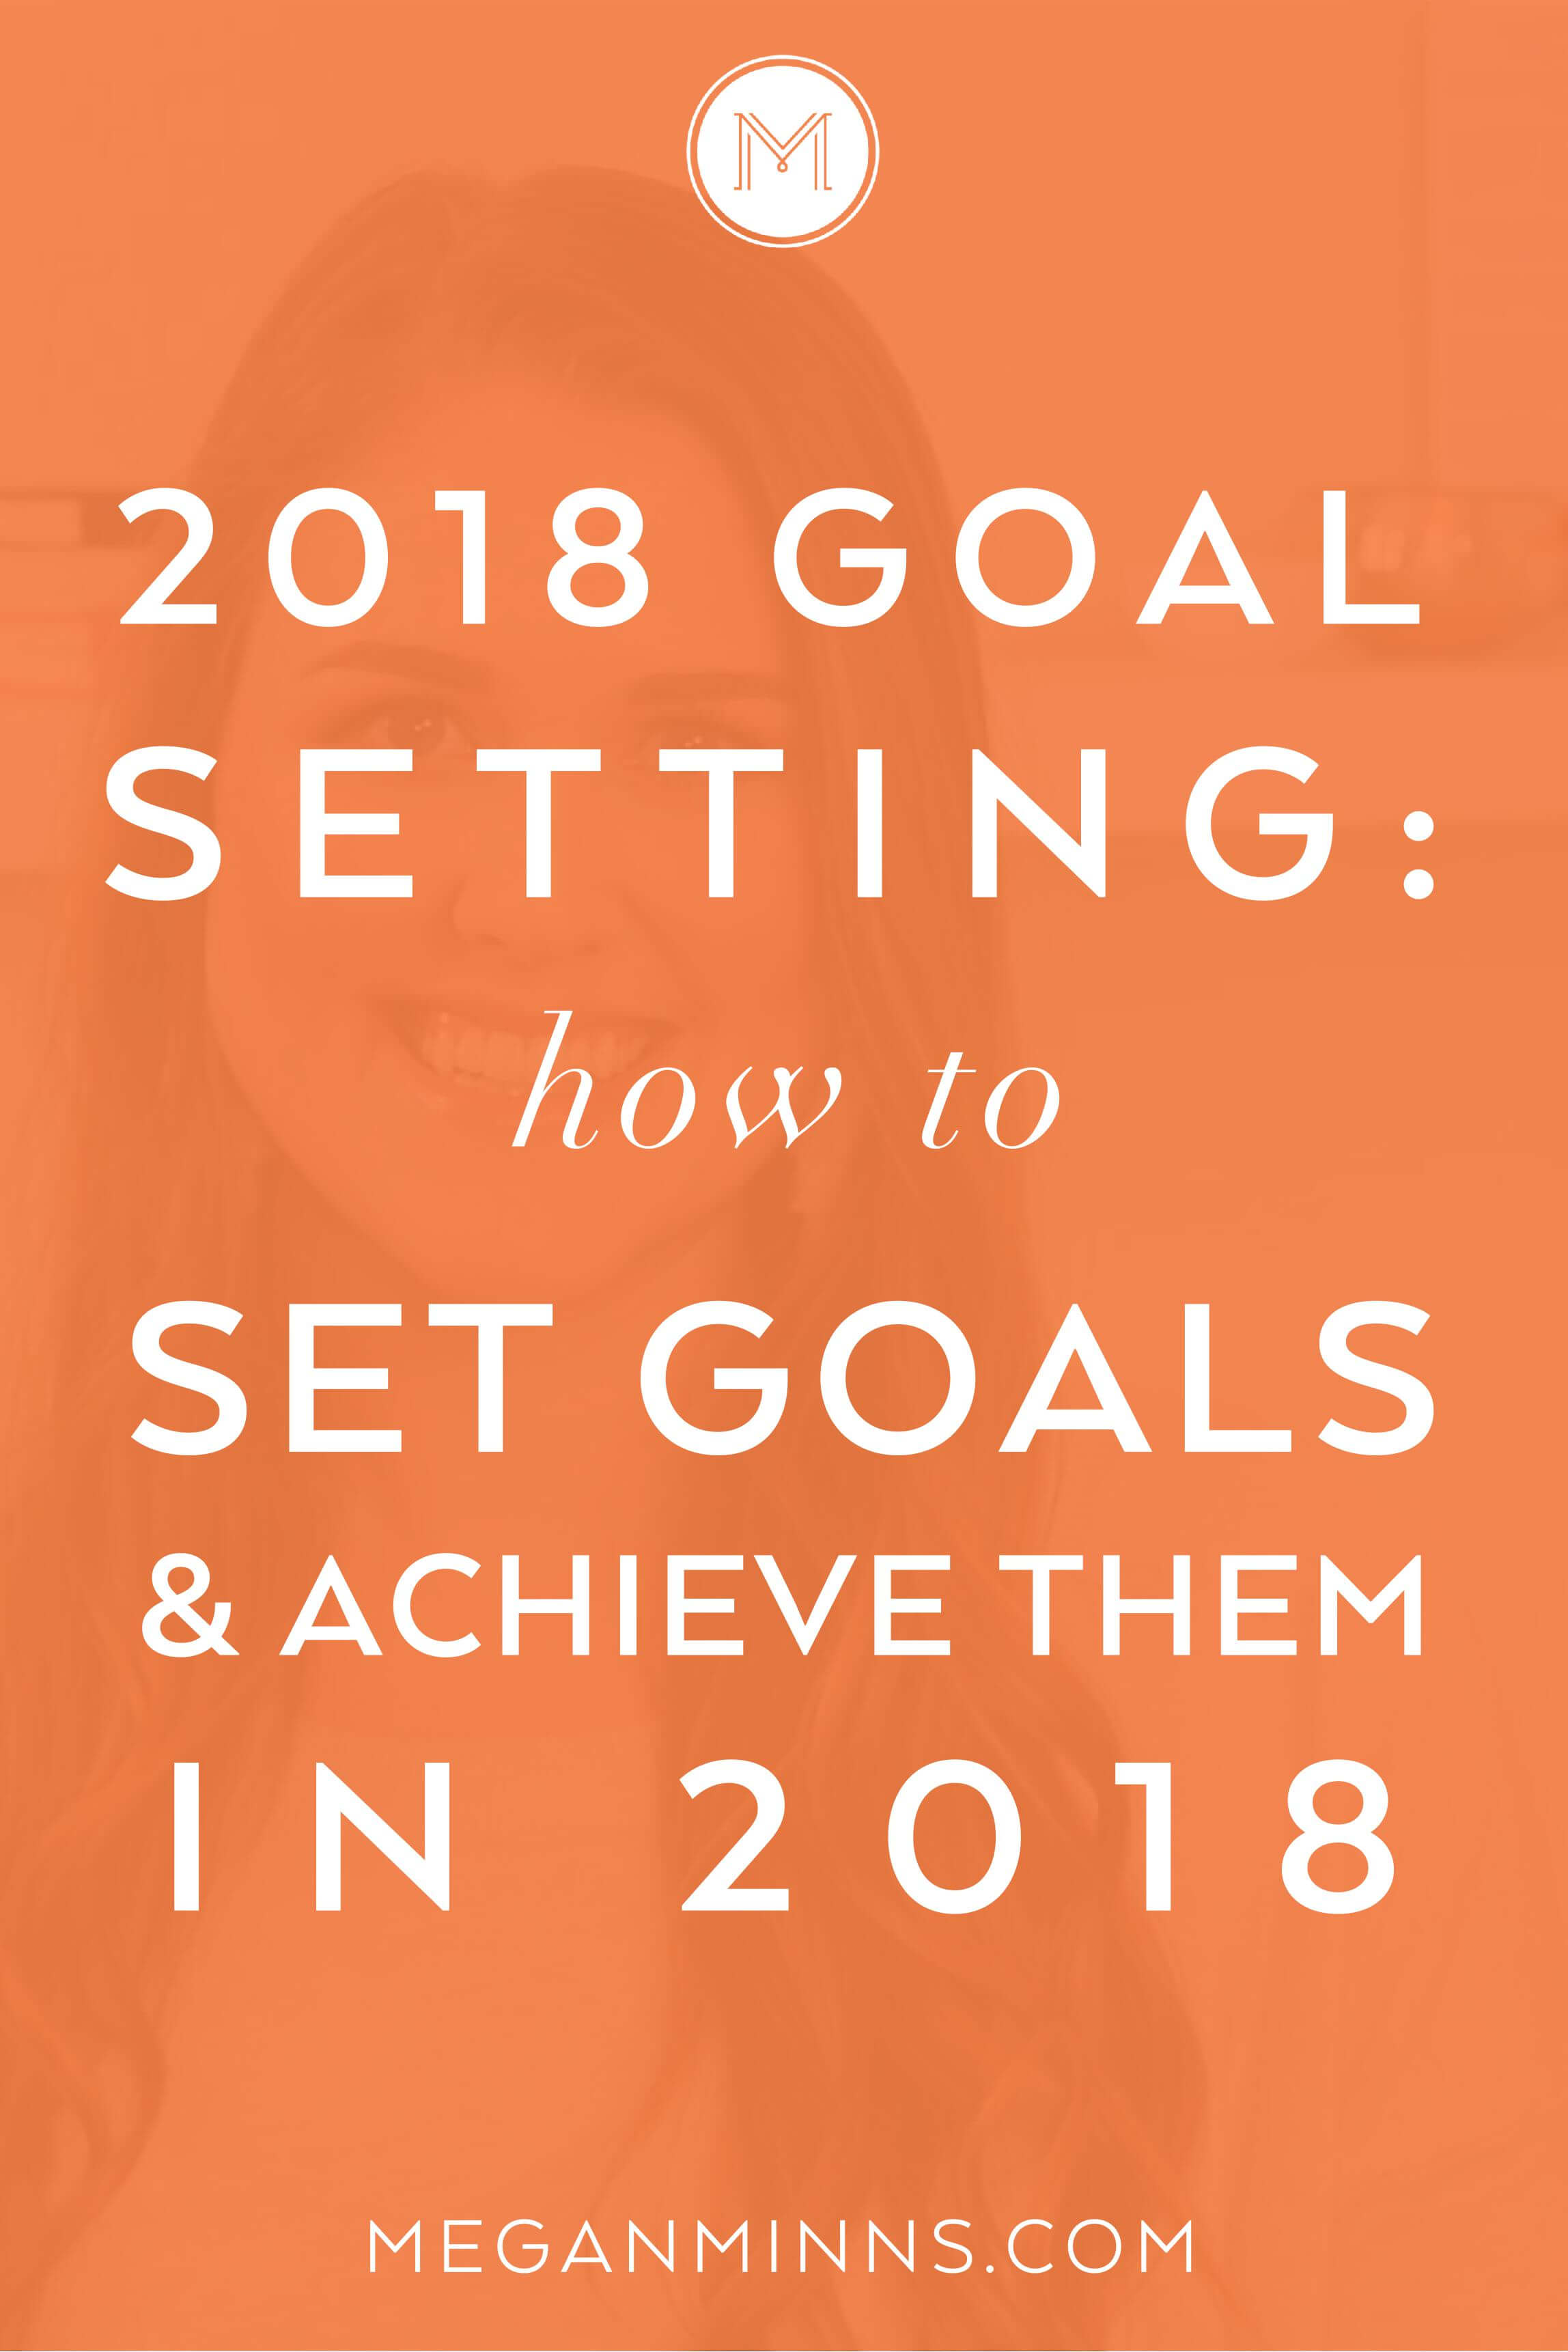 If you're ready to set achievable goals in 2018, download this free Goal Setting workbook! It will guide you through 6 actionable steps to success.